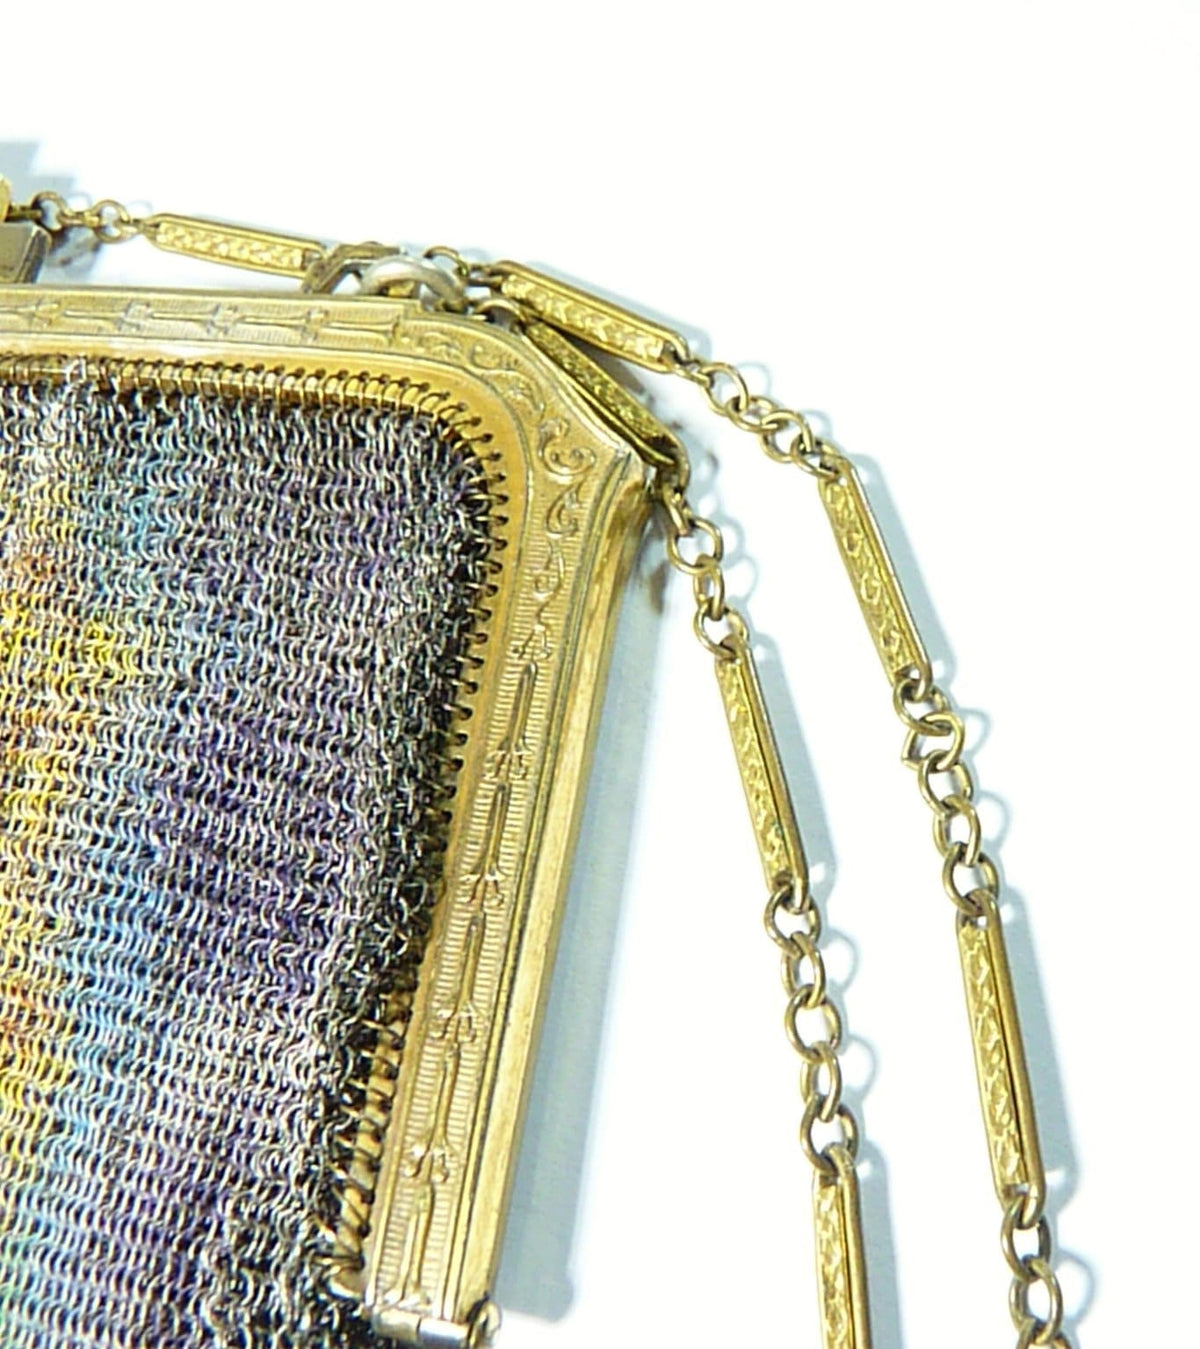 Dresden mesh enamel purse frame and gold chain